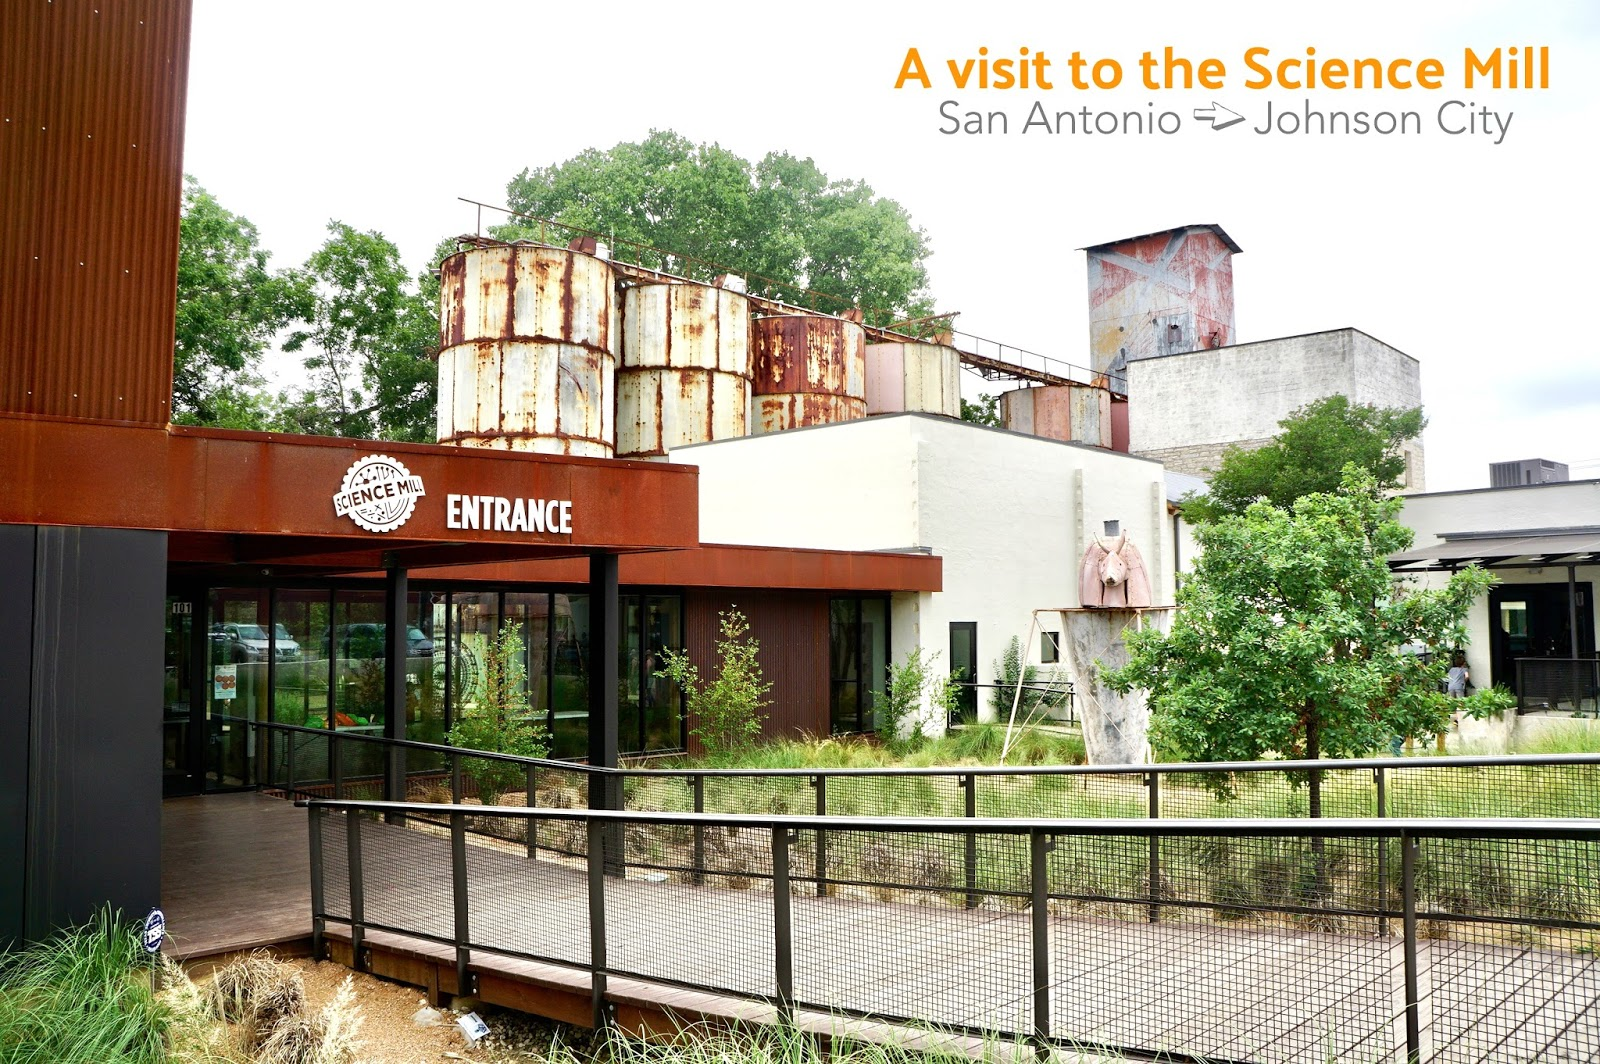 Texas Daytrips To Johnson City To Visit The Science Mill